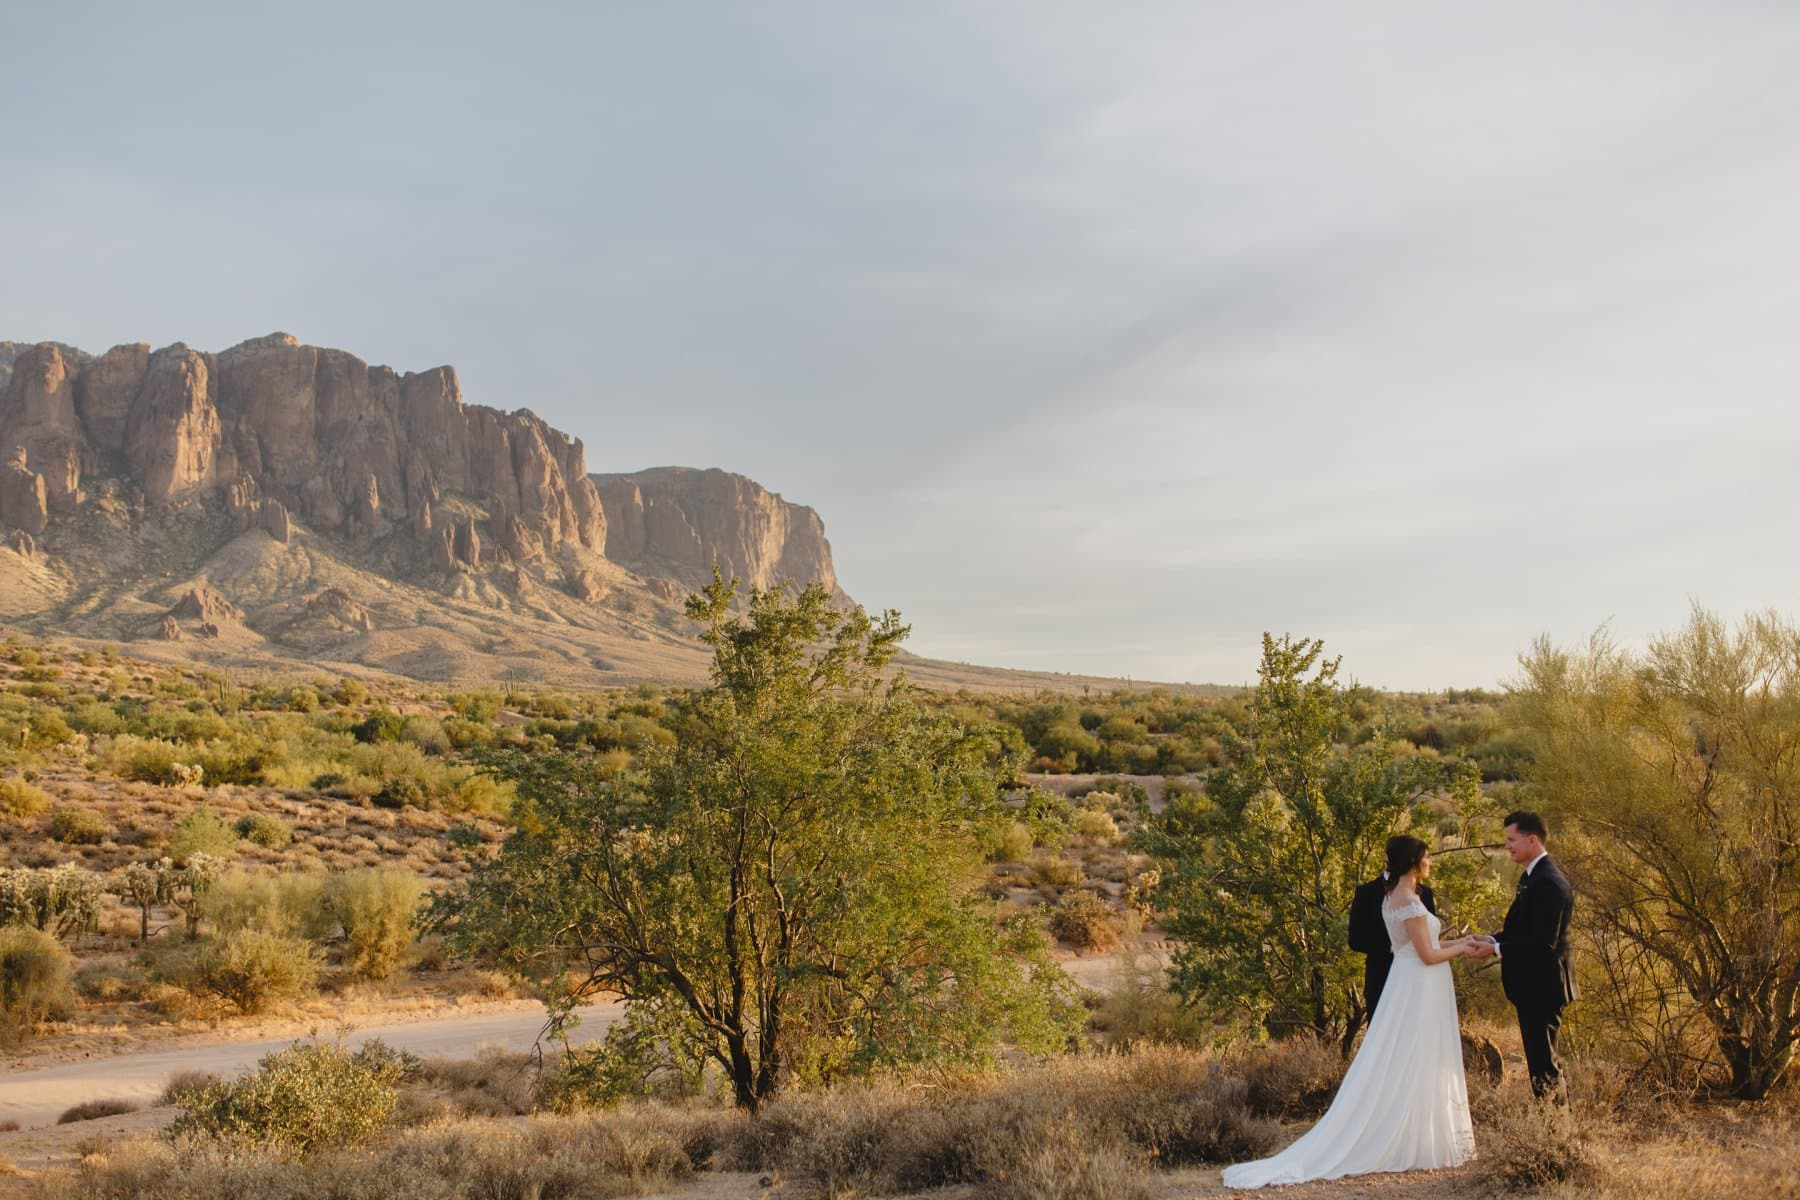 beautiful Arizona desert and mountains elopement location